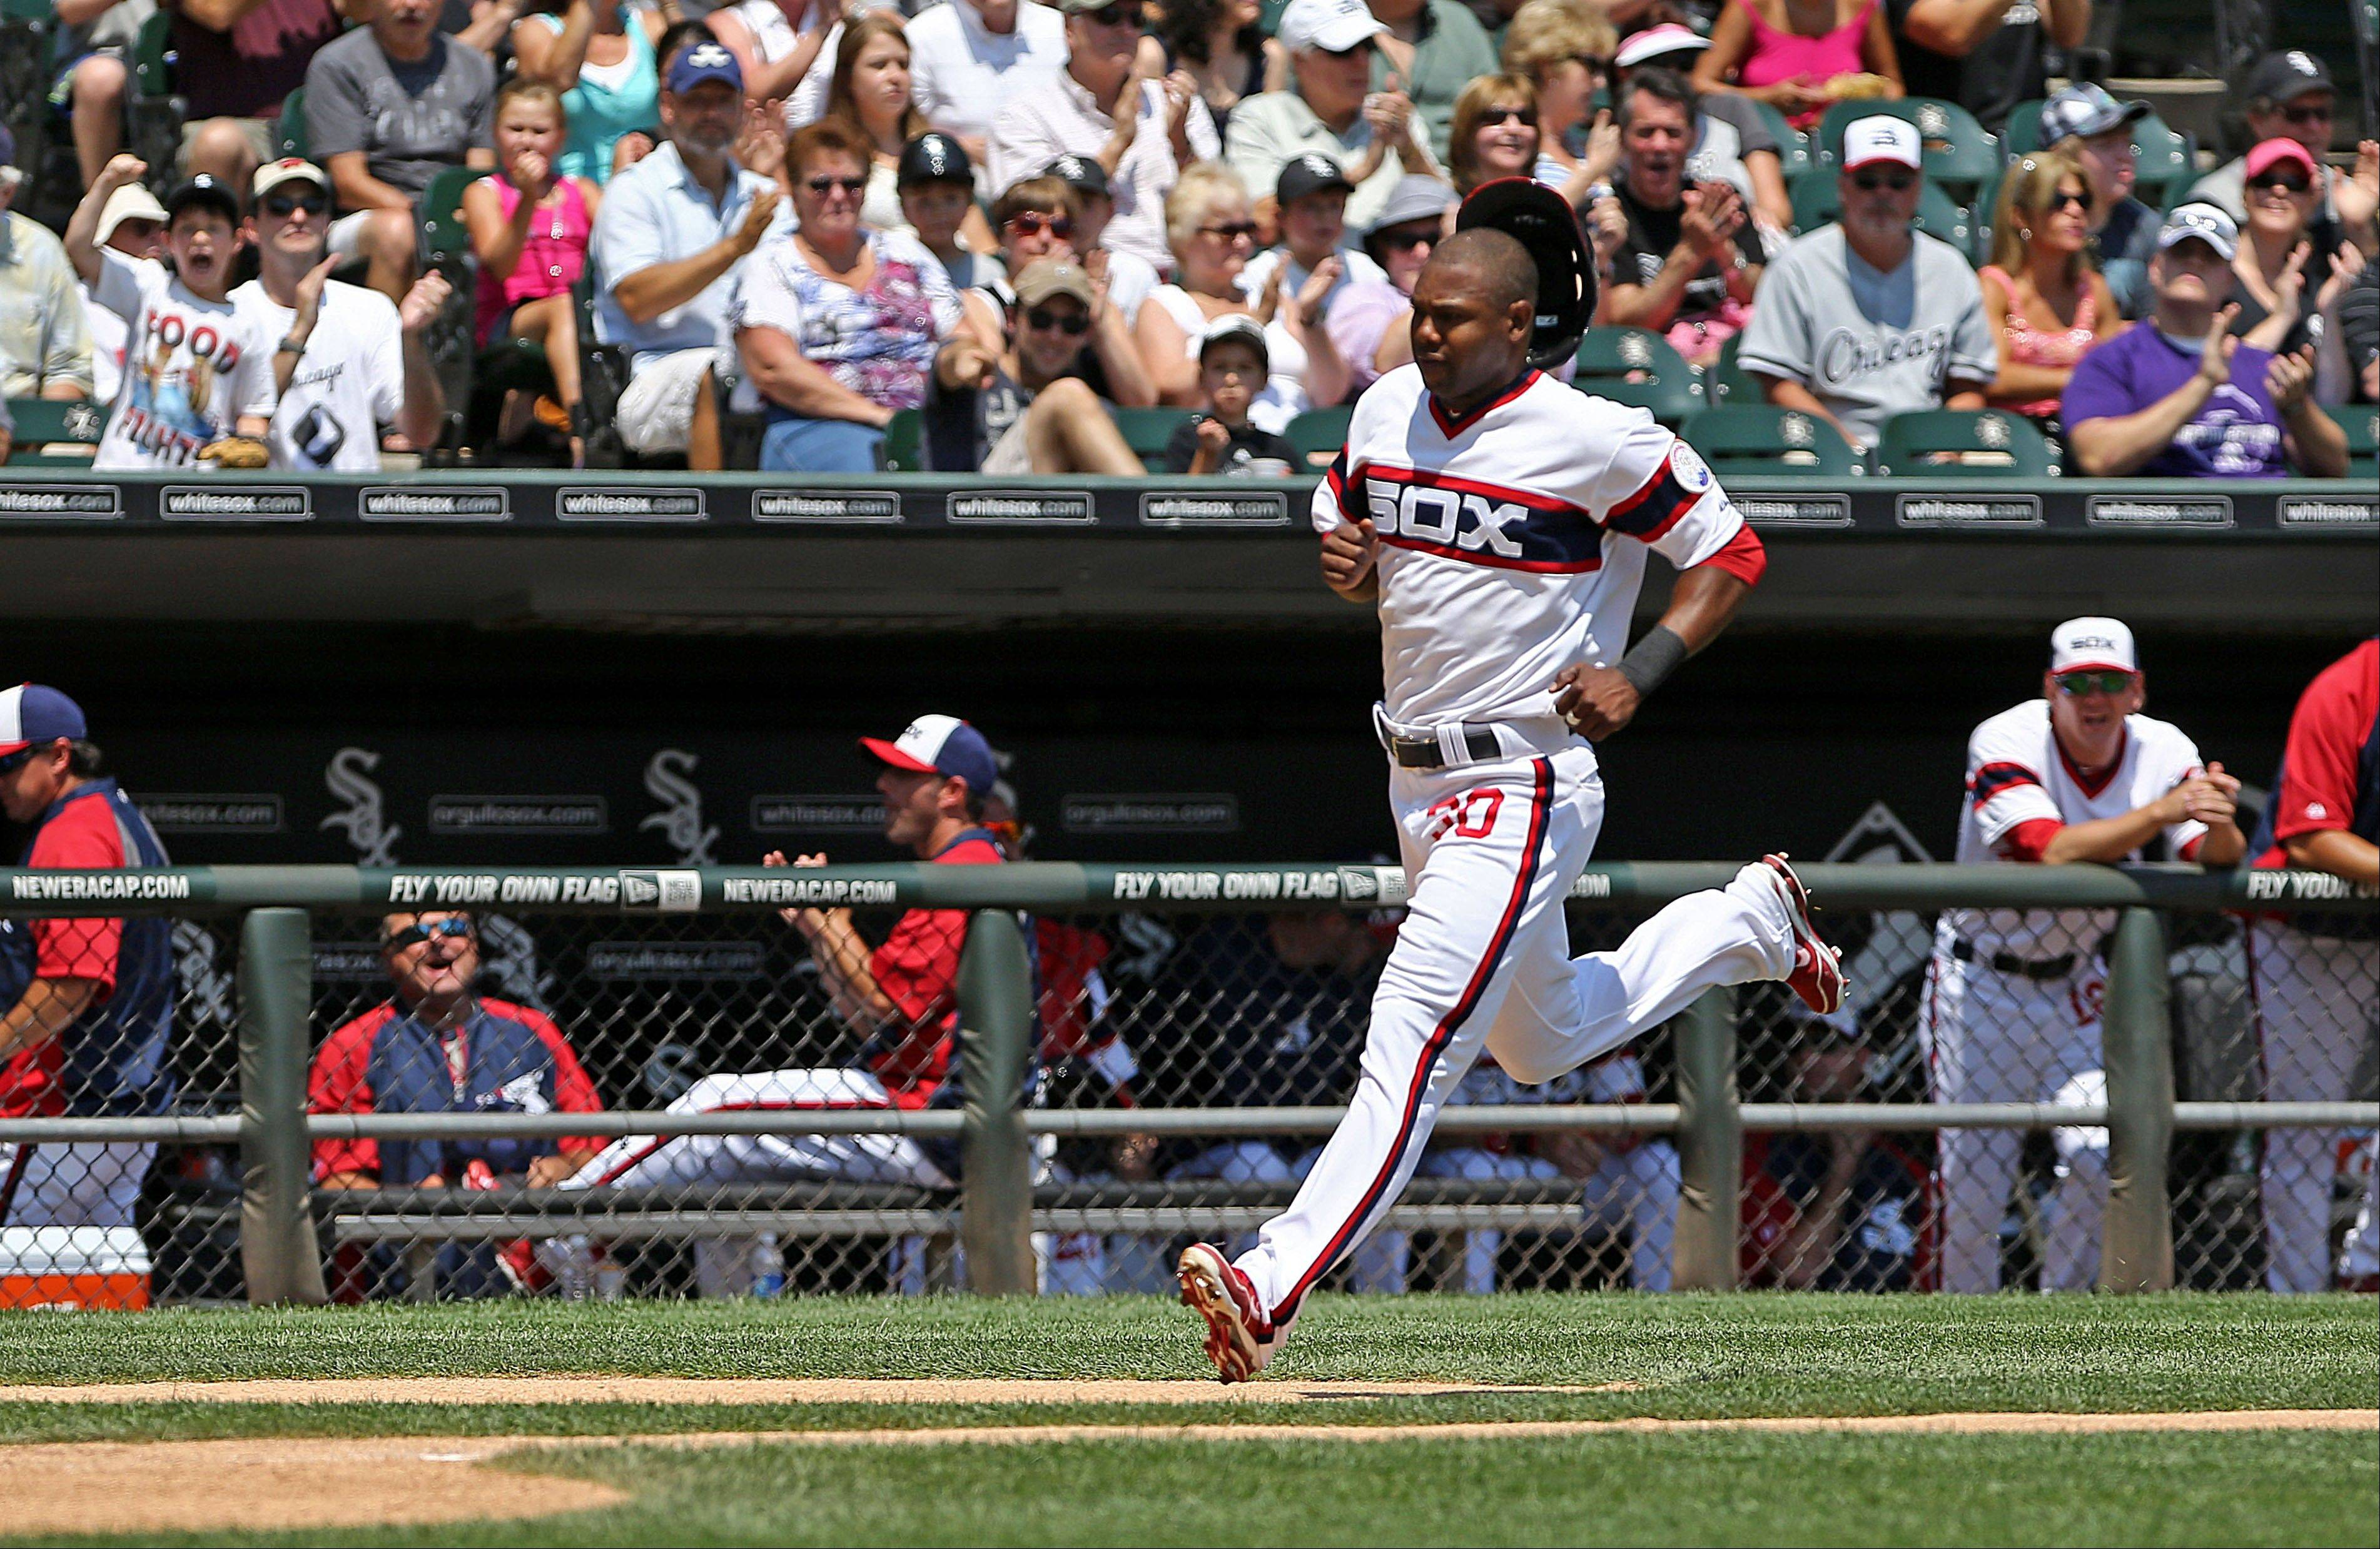 White Sox outfielder Alejandro De Aza scores in Sunday's first inning against the Atlanta Braves at U.S. Cellular Field.